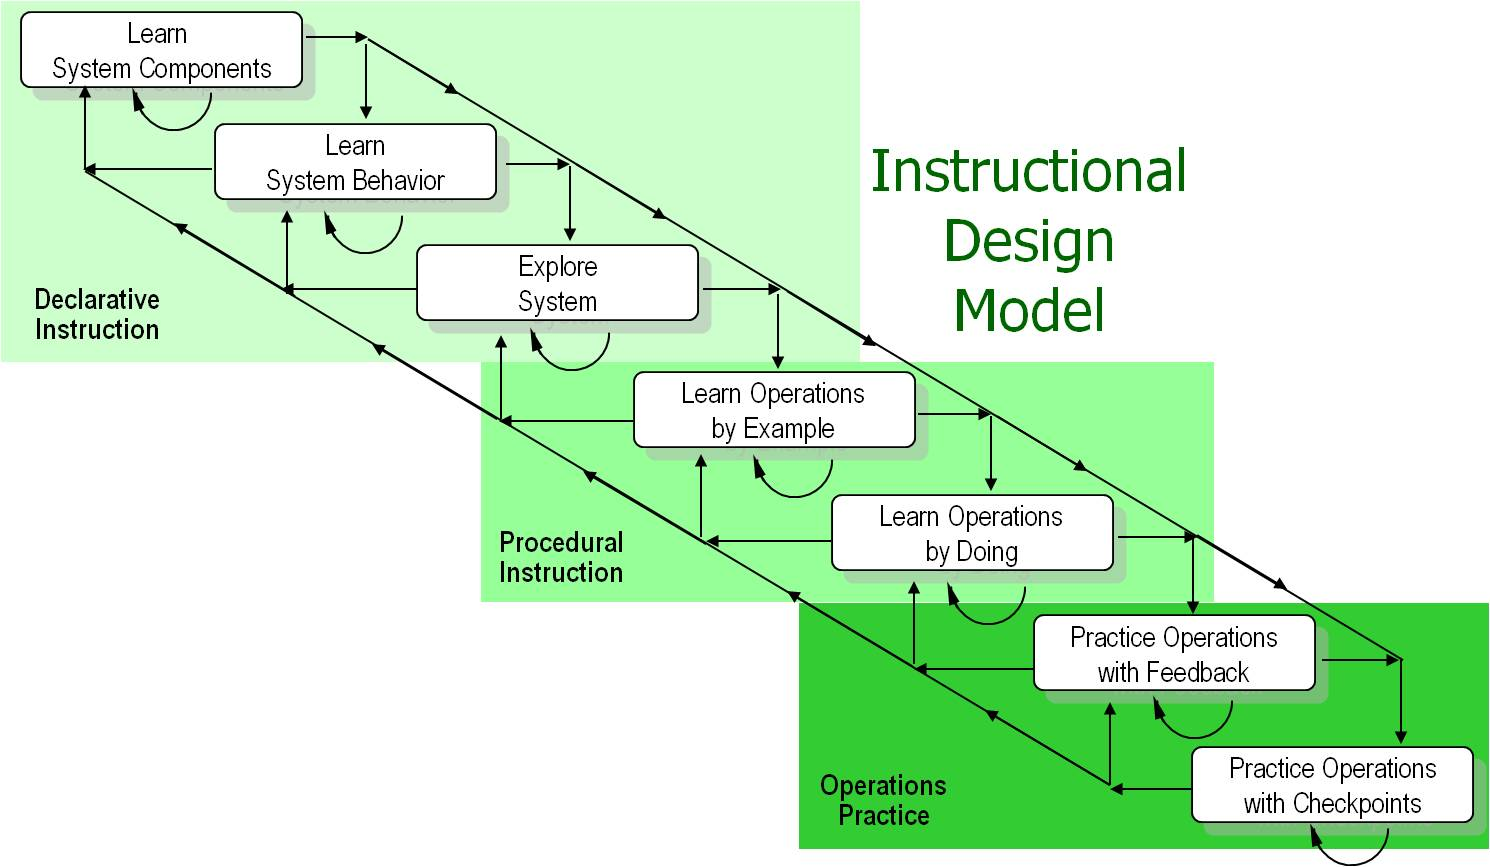 Myers Competency Based Id Flowchart Instructional Design Models And They Are Looking Good